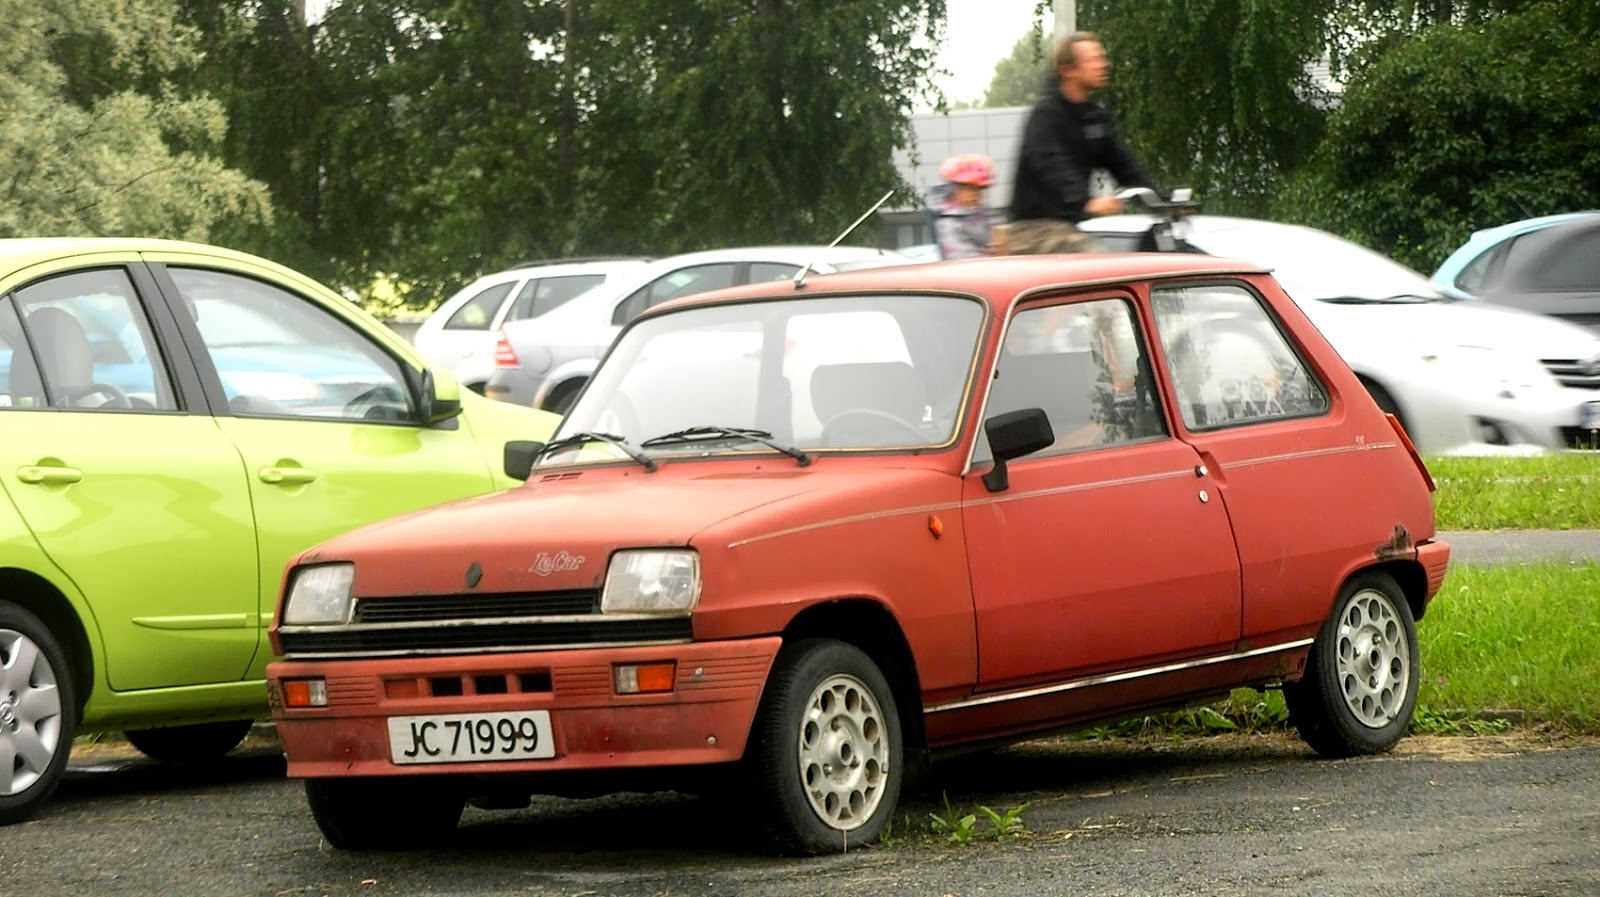 Renault le car related imagesstart 0 weili automotive network 1976 renault 5 le car tl i gen sciox Image collections